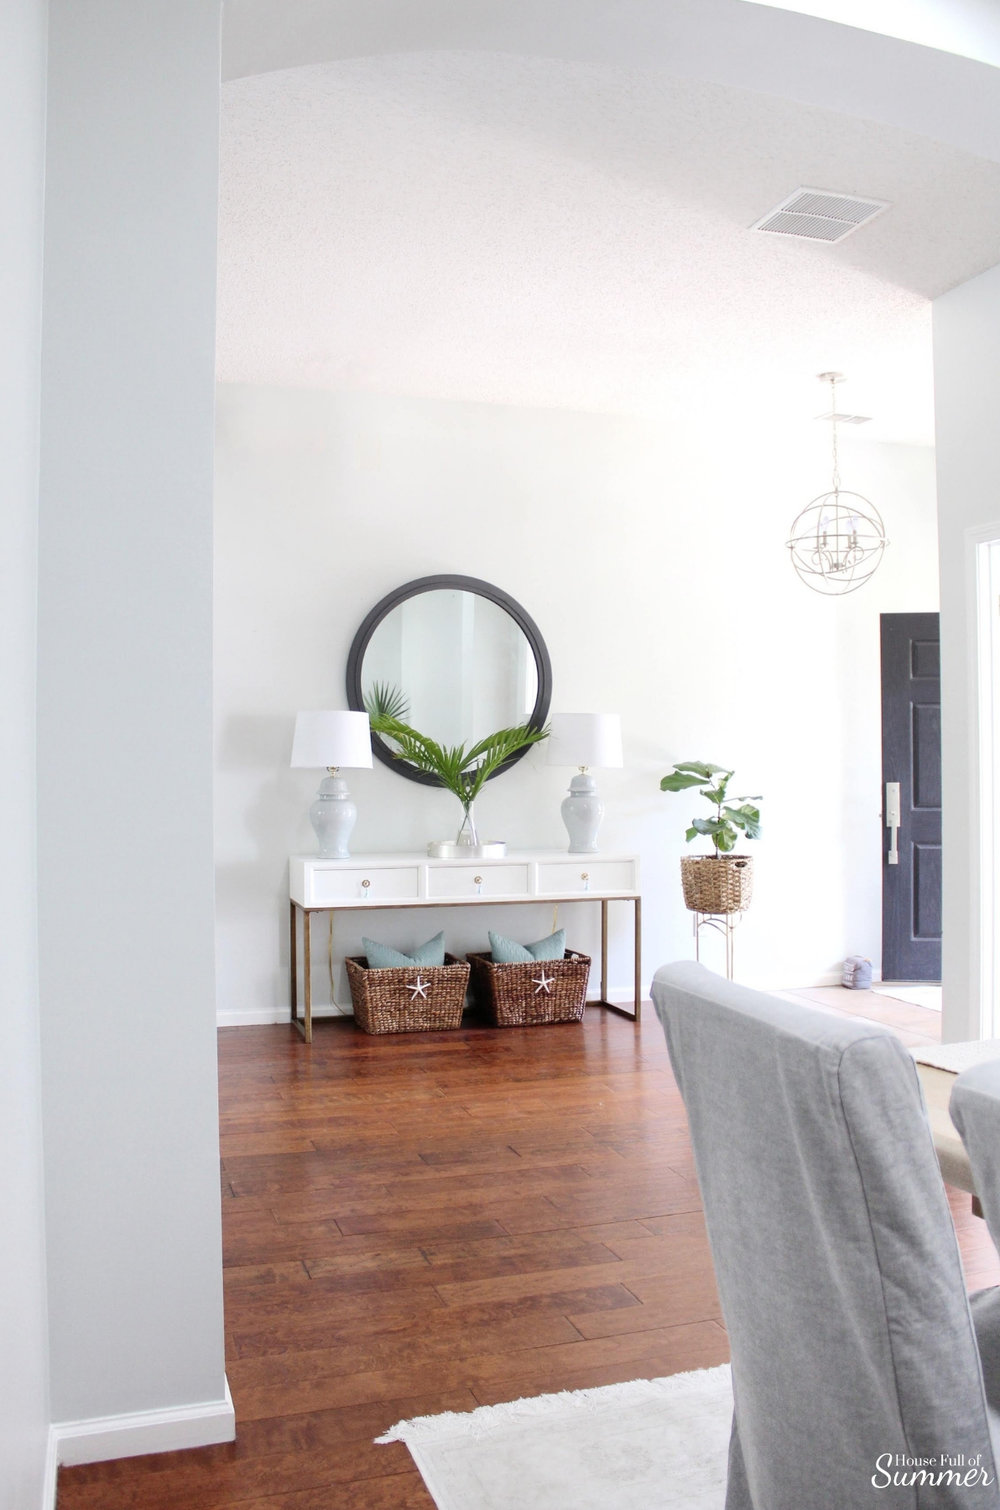 Adding Spring Color to the Living Room and Foyer | House Full of Summer - spring decor, coastal decor, neutral interior, turquoise accents, console table, round mirror, fiddle leaf fig, decorating with palm fronds, entryway, lighting, Florida home decor ideas, slip covered furniture, jute rug, beach house style, cane bar cart, DIY spray paint, budget decor, rattan bar cart, bamboo cart, accent table, spring home tour, chinoiserie chic